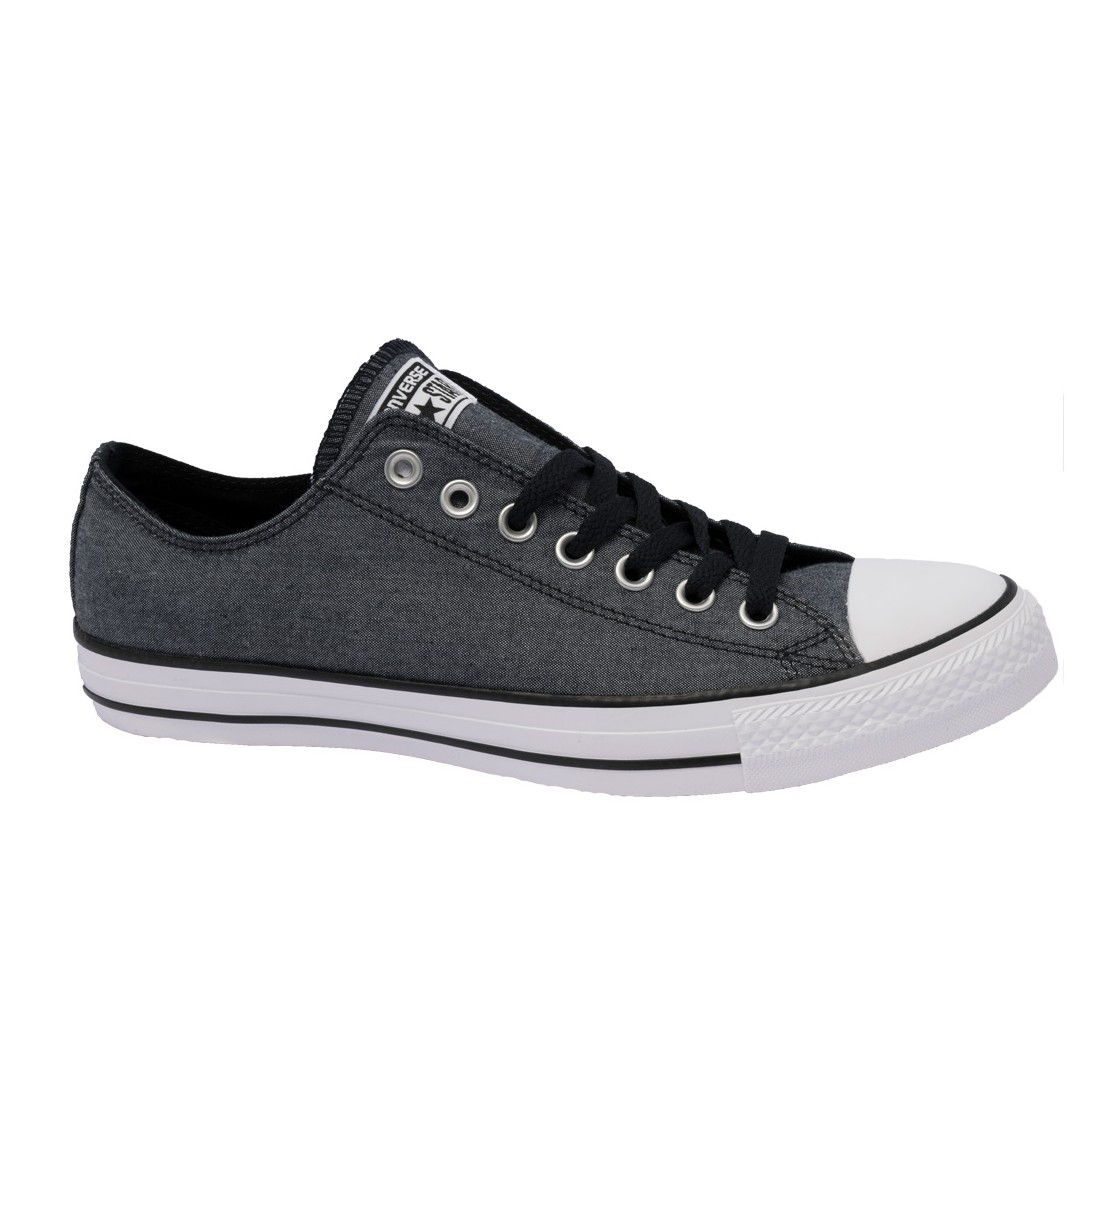 Converse Unisex Παπούτσι Μόδας Chuck Taylor All Star Ox 155399C